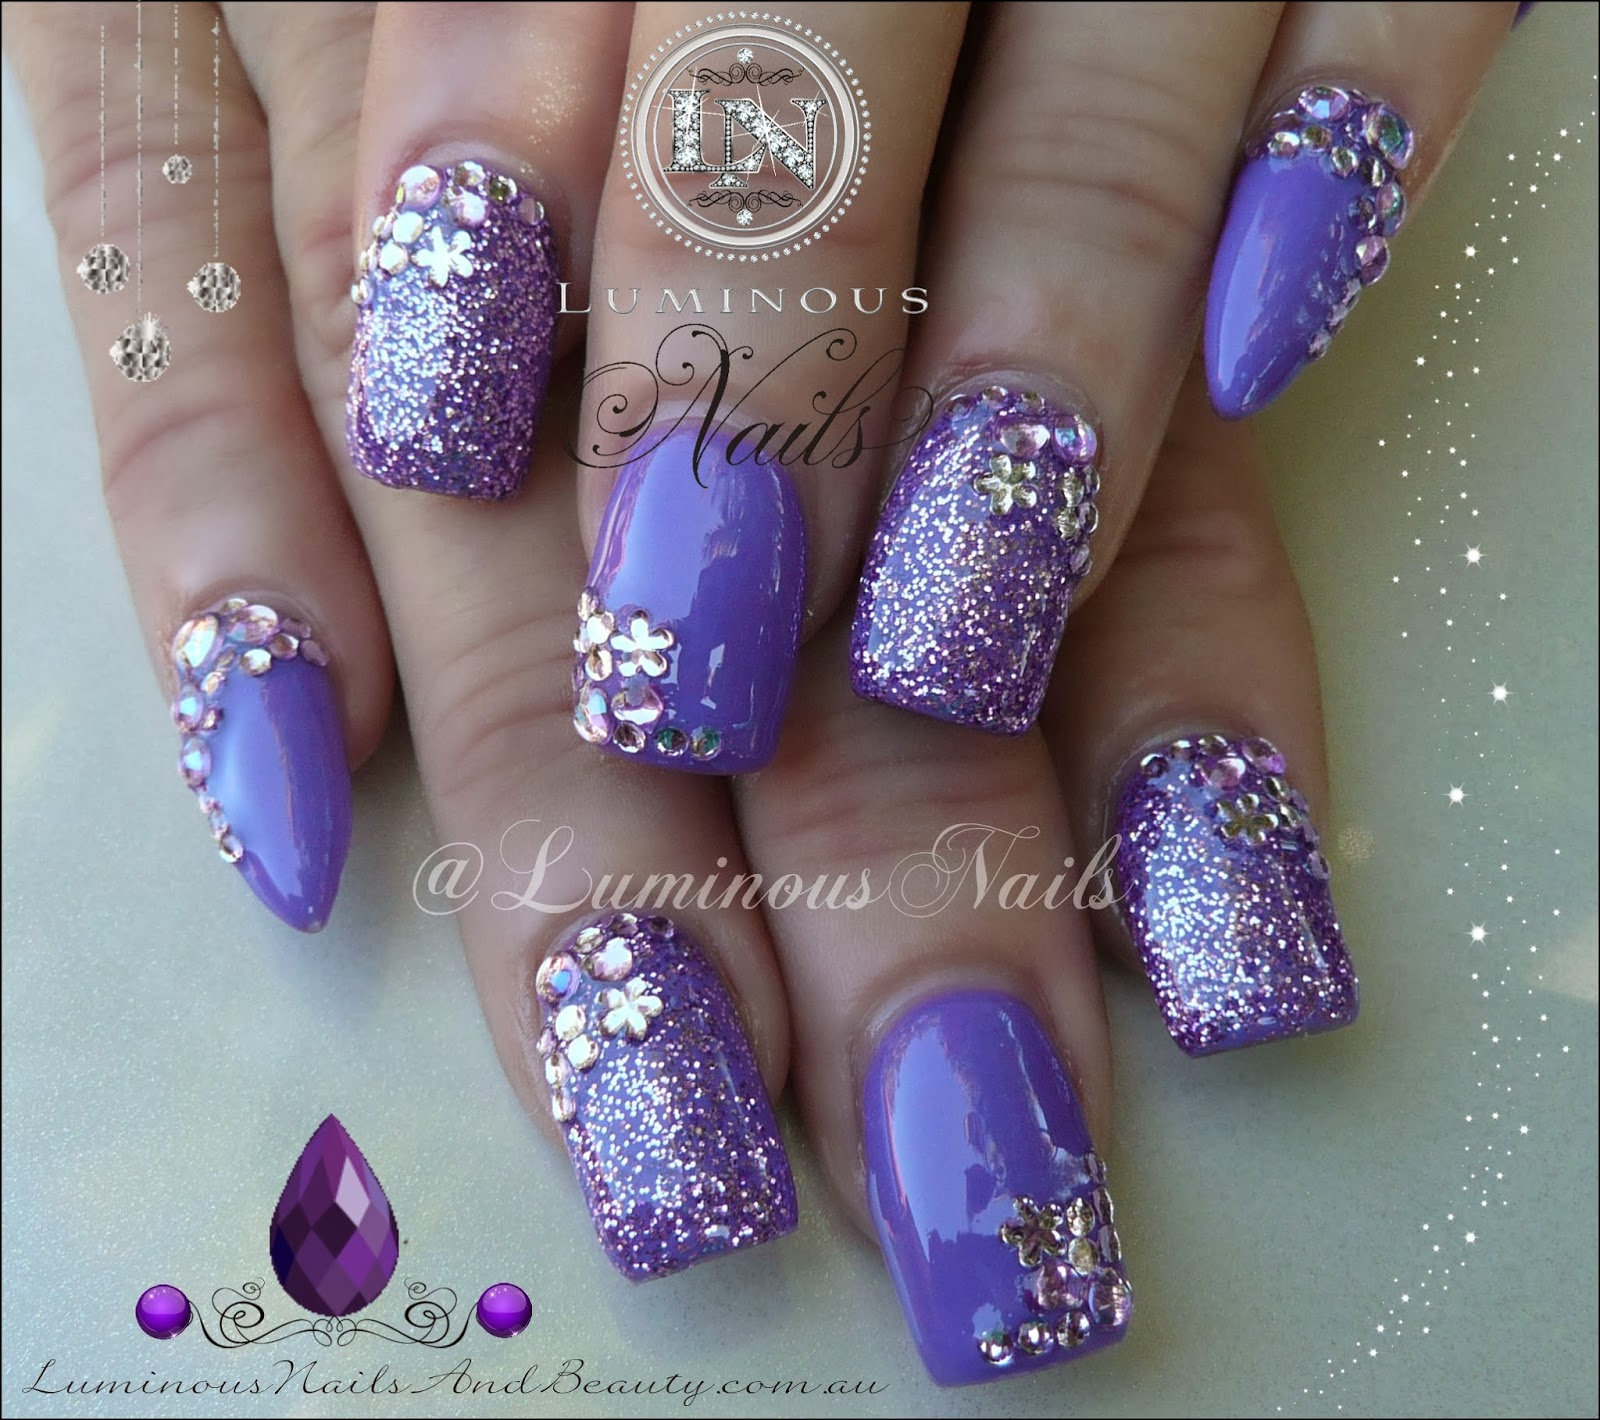 Funky Lavender Pointy Nails Frieze - Nail Art Ideas - morihati.com